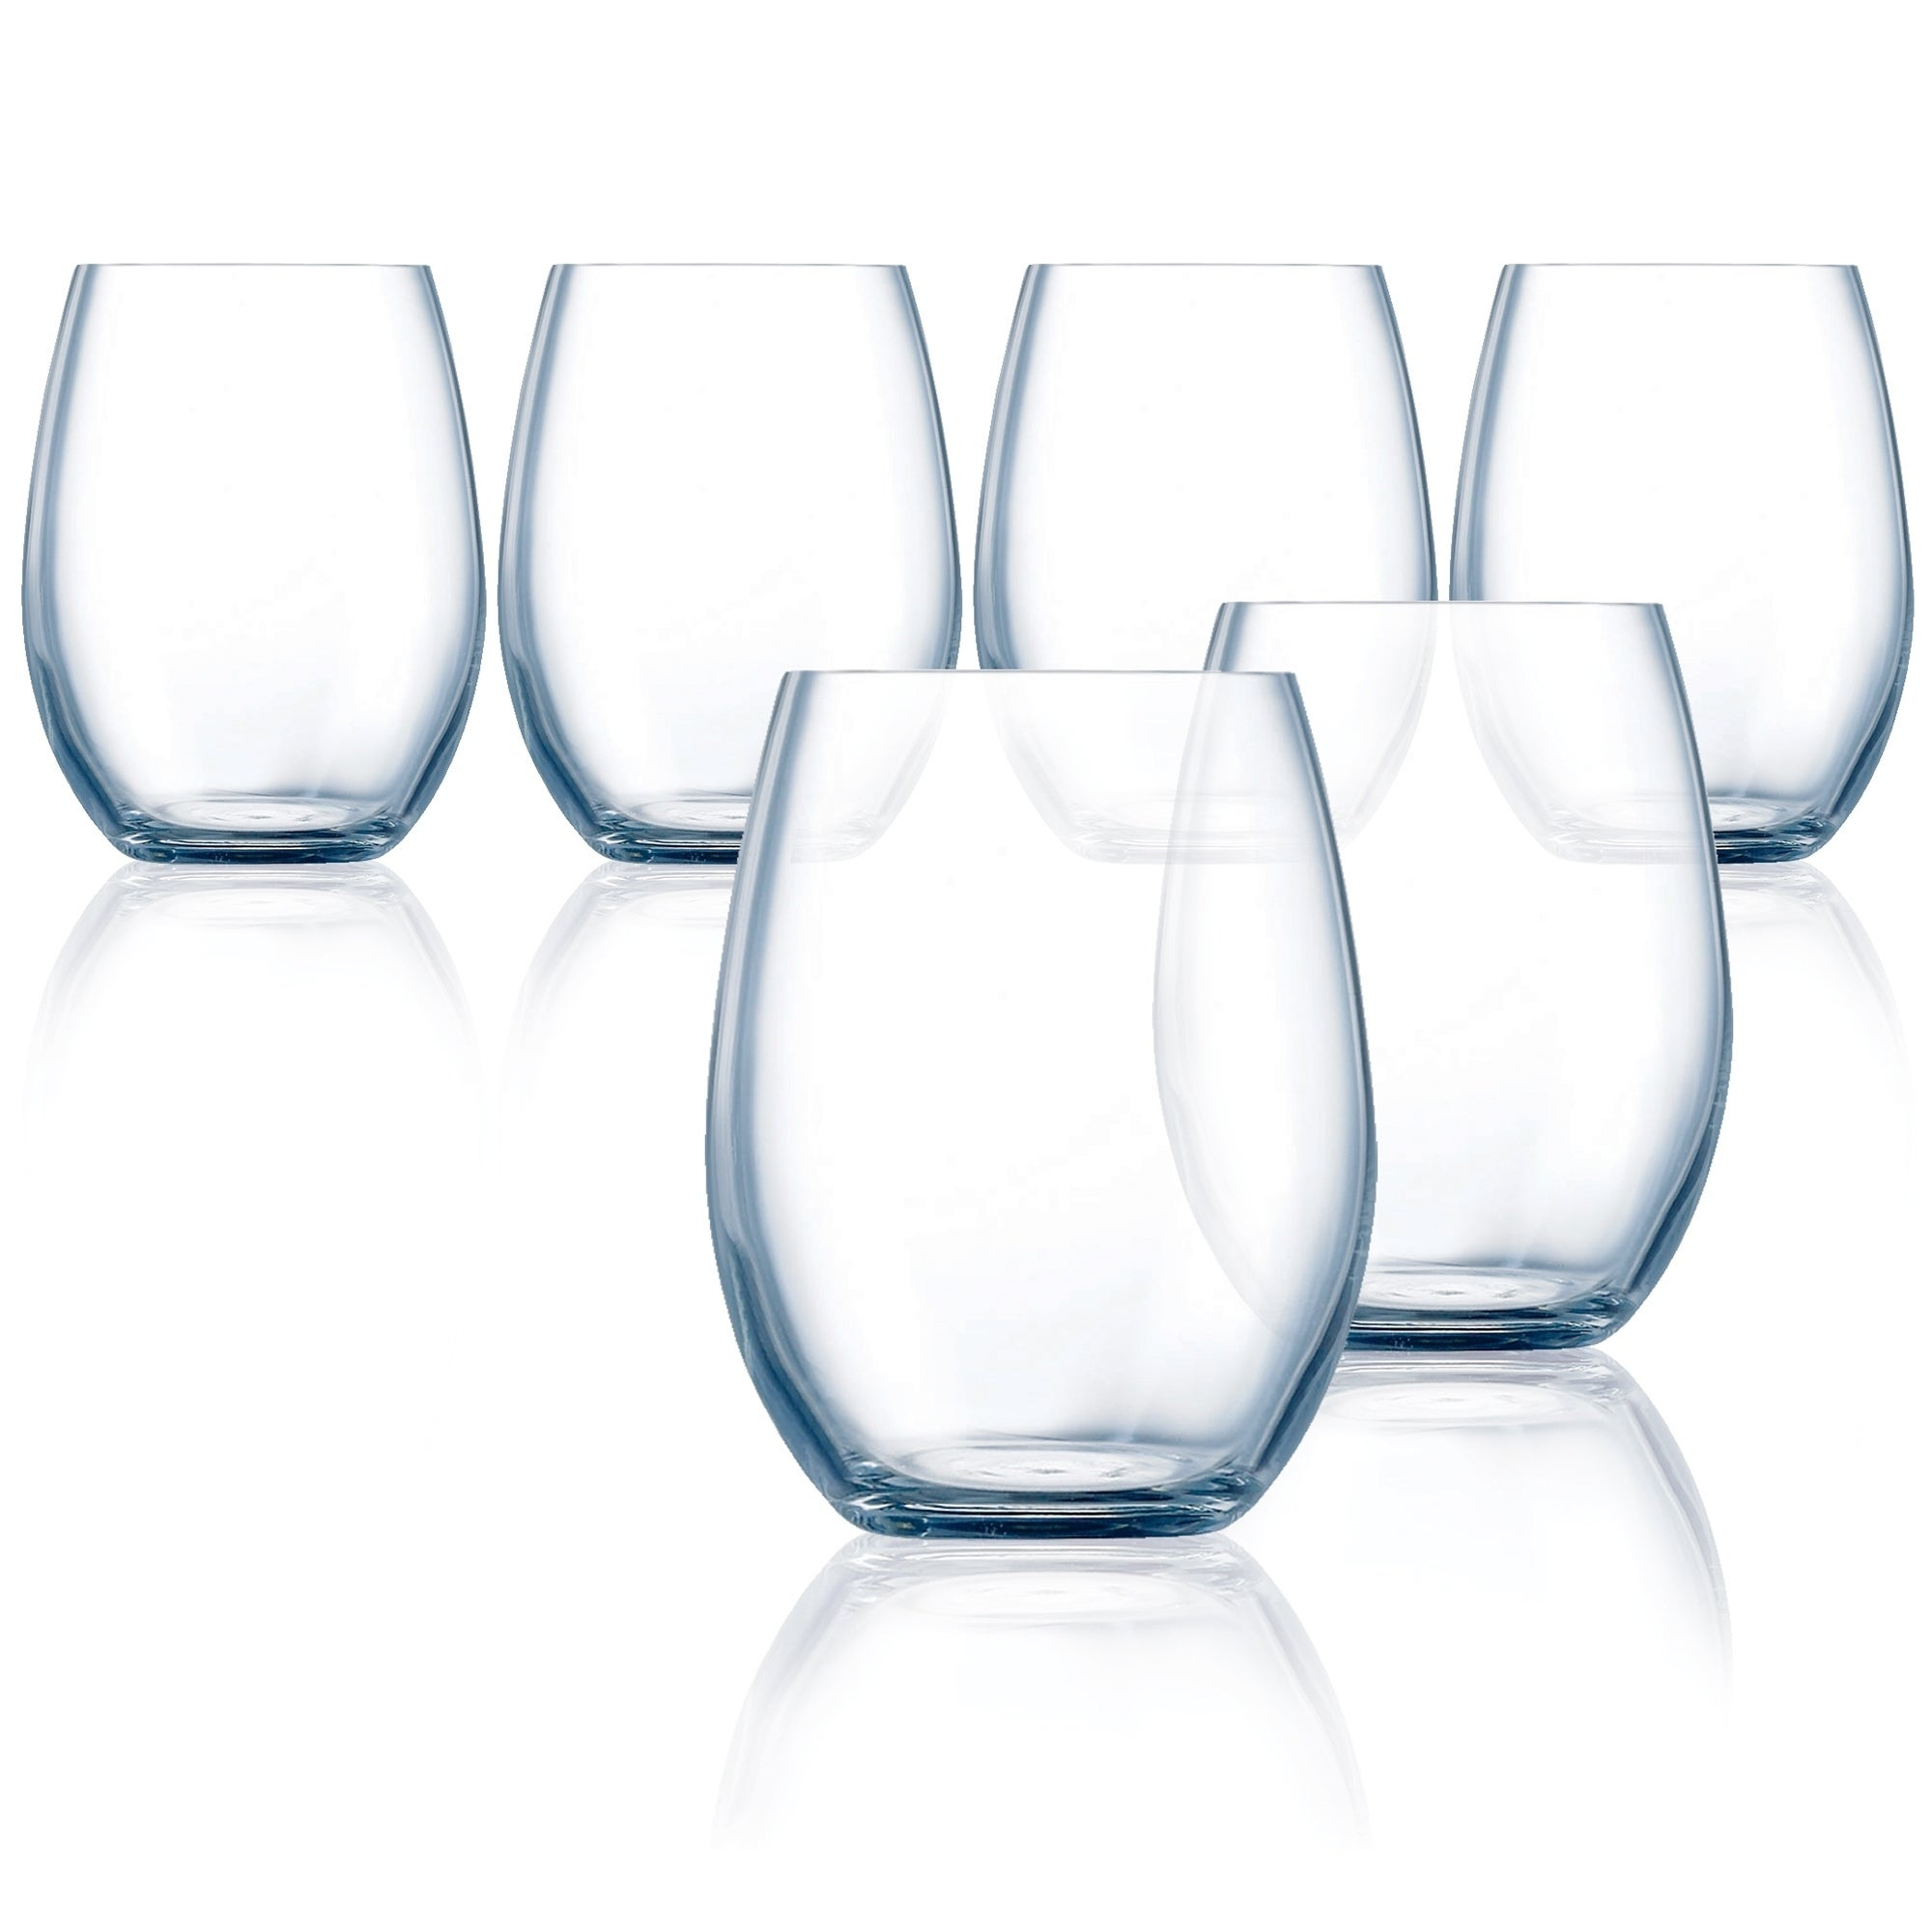 bea9b564fee Shop Chef & Sommelier Grand Vin All Purpose Stemless Wine Glass, 14.75  ounce, Set of 6 - 14.75 oz - Free Shipping On Orders Over $45 - Overstock -  26564772